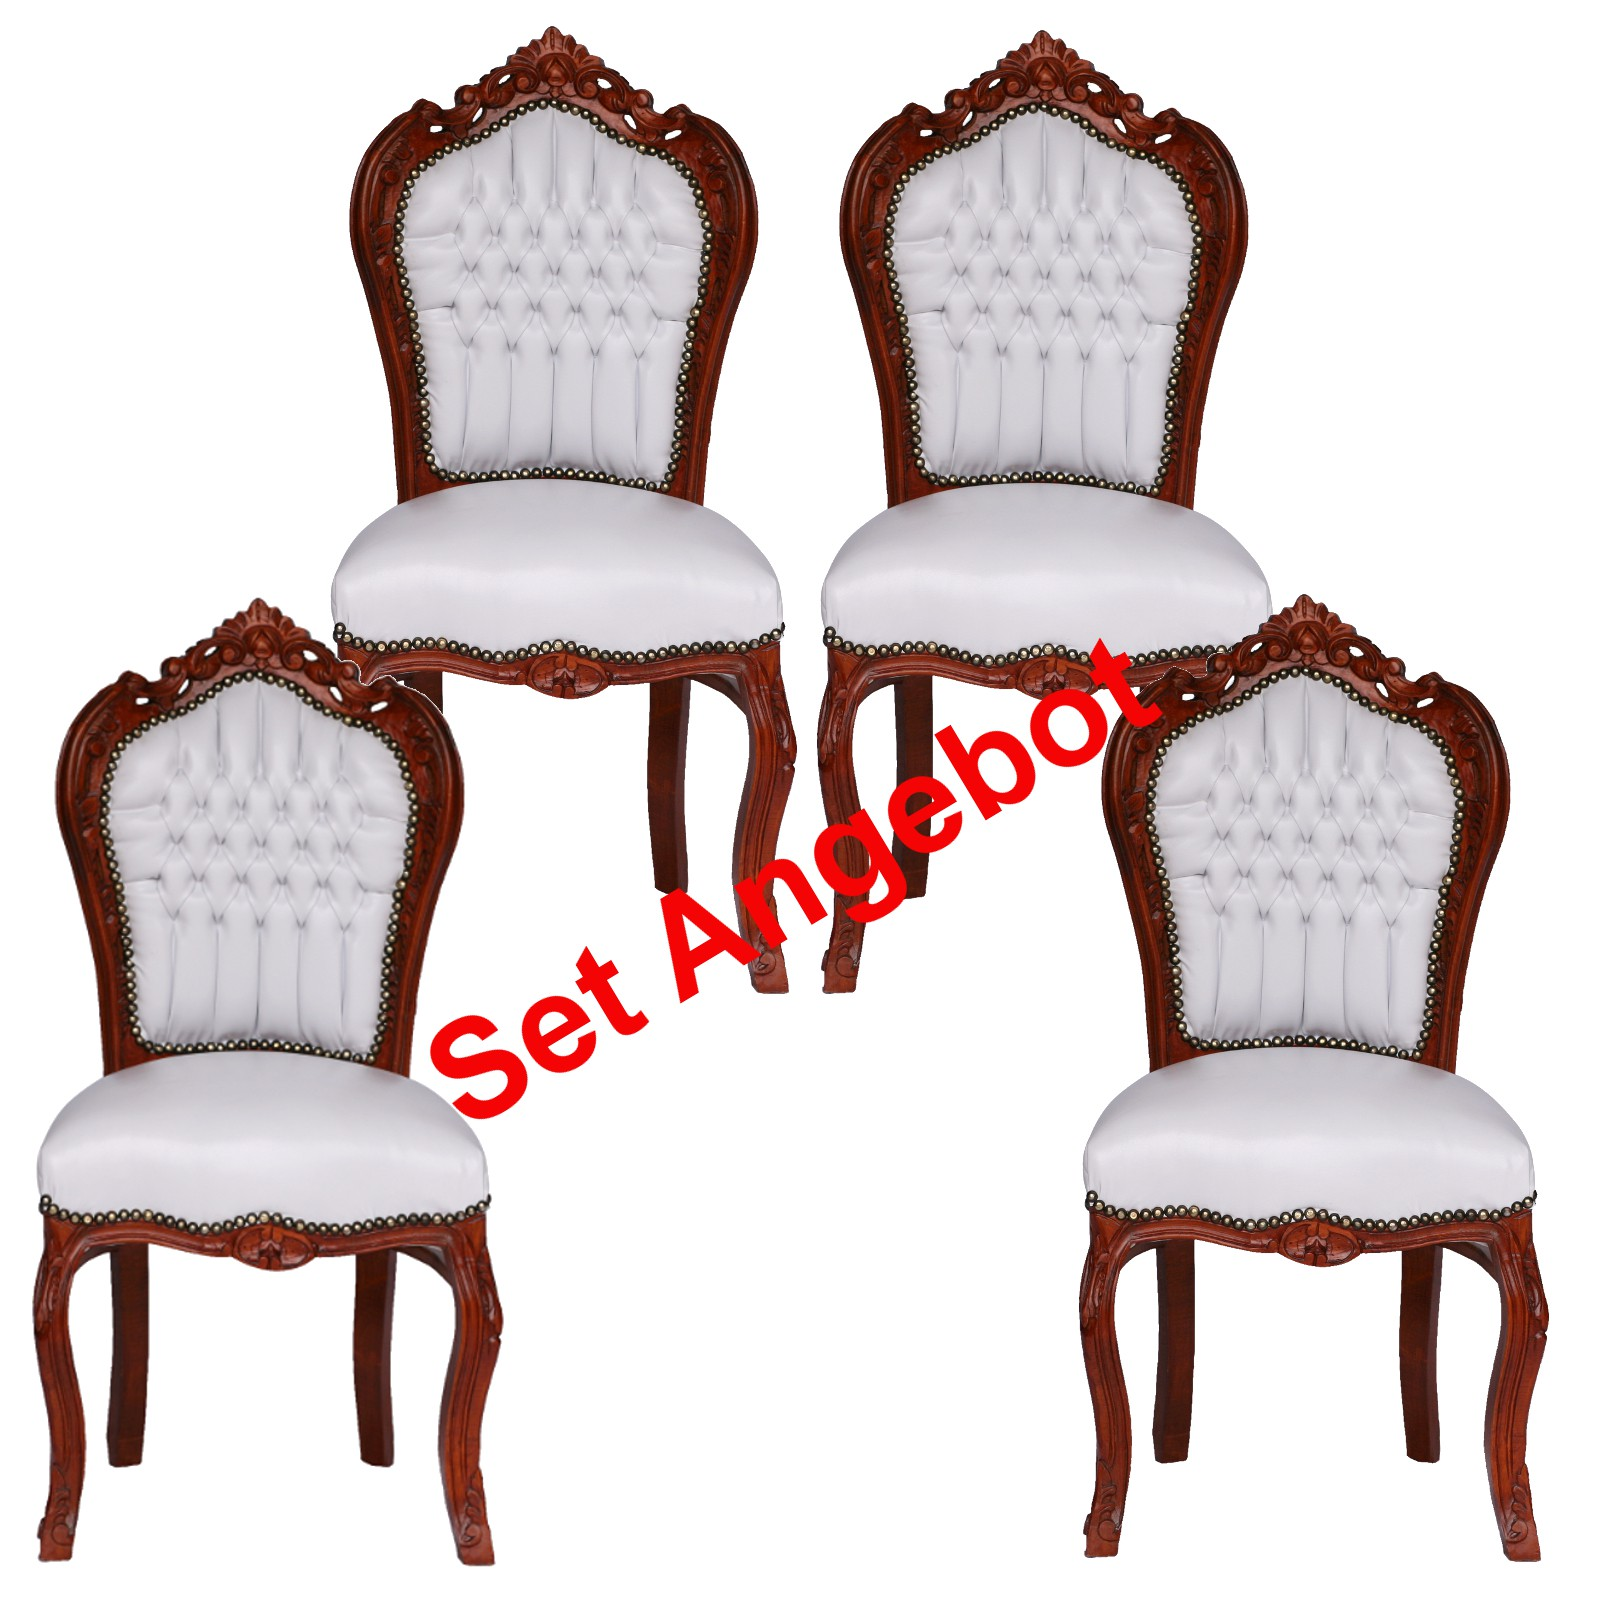 st hle f r esszimmer barockm bel antike essgruppe 4 er set braun wei stuhl. Black Bedroom Furniture Sets. Home Design Ideas